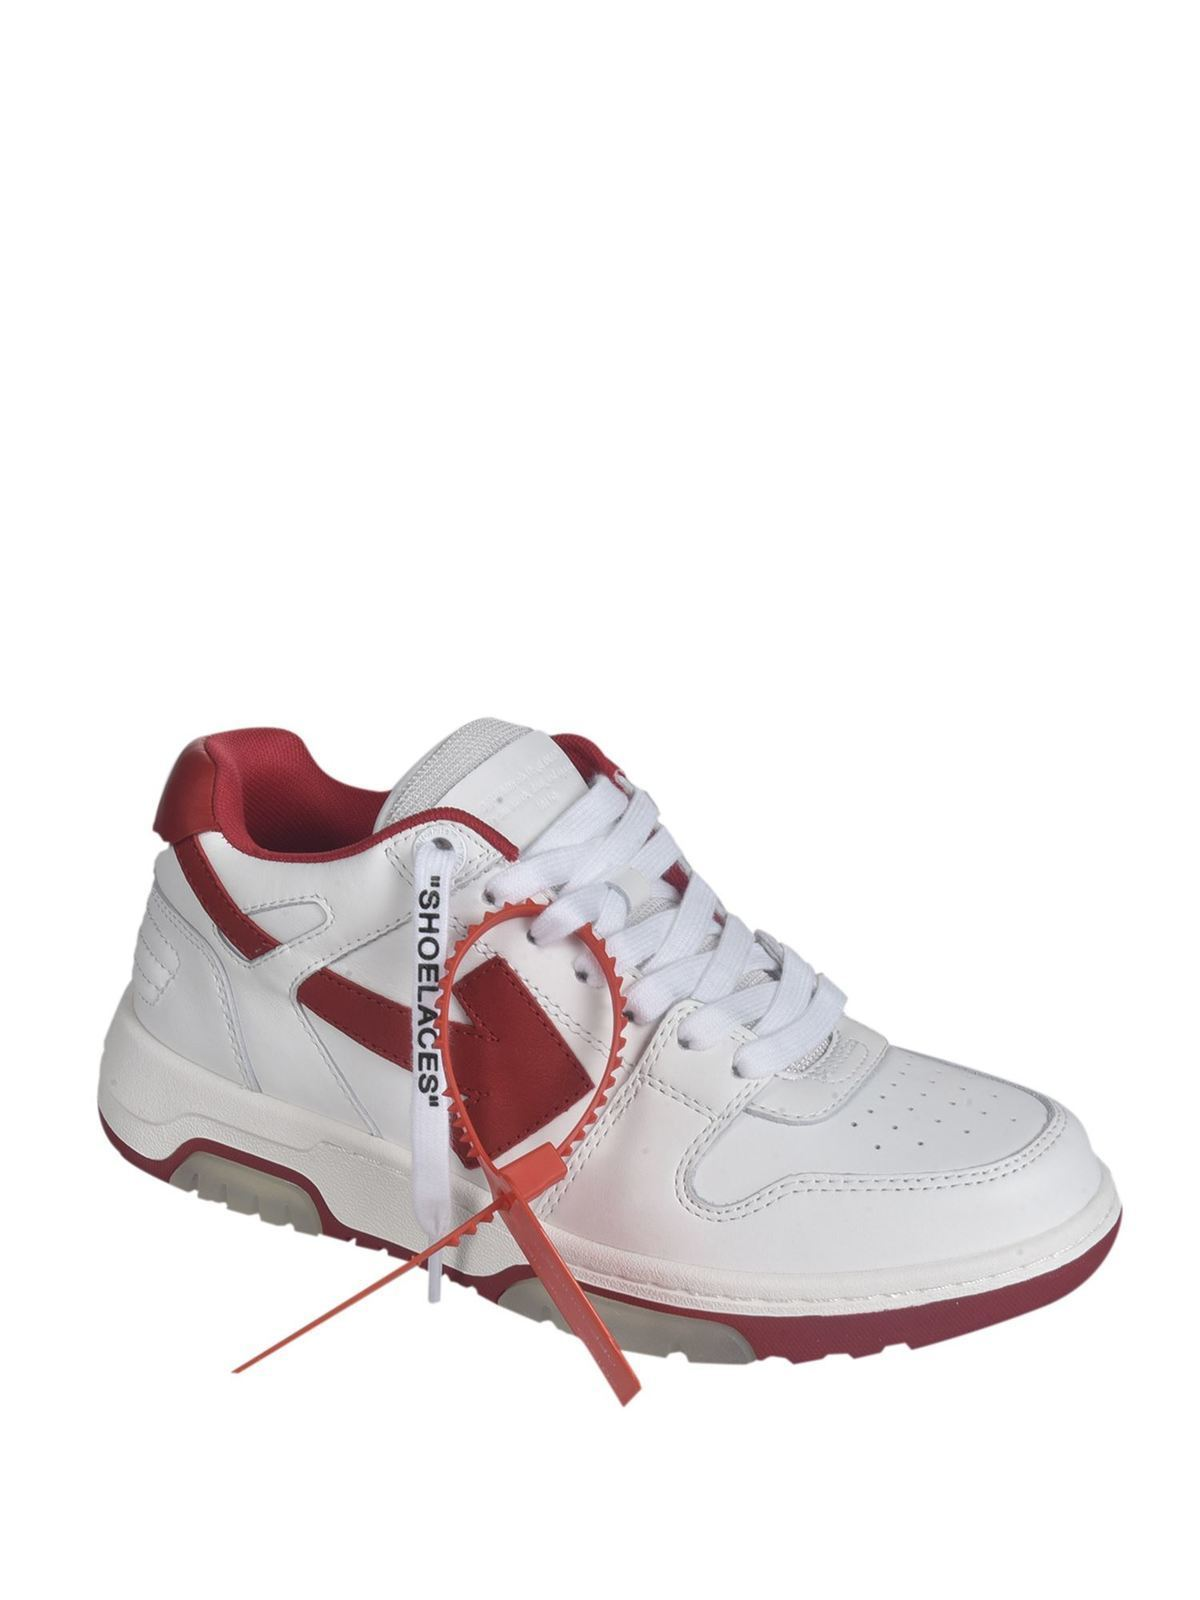 Office sneakers in white and red